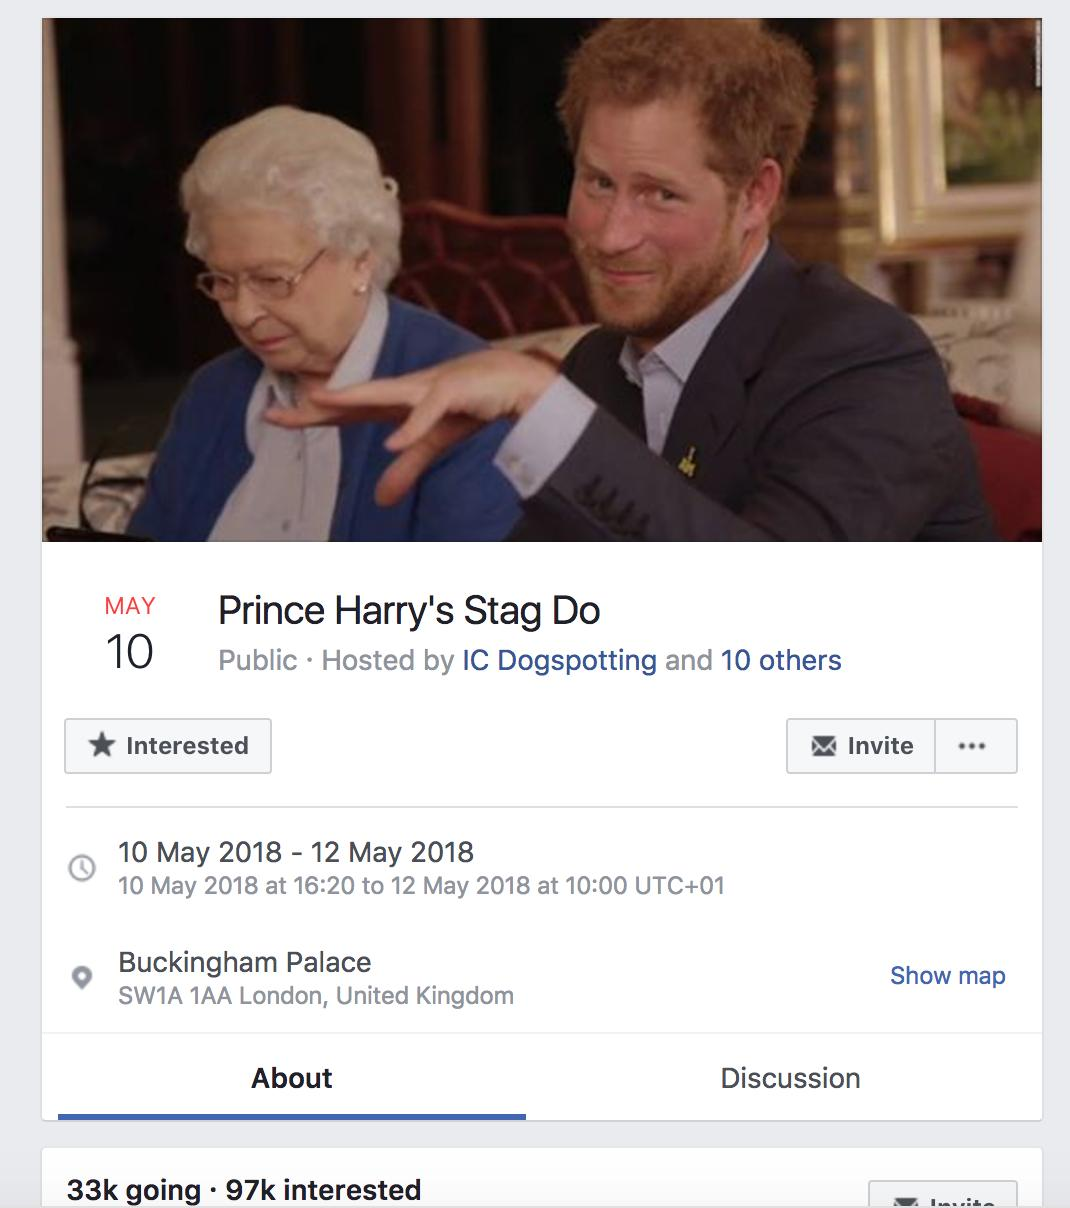 Prince Harry stag do